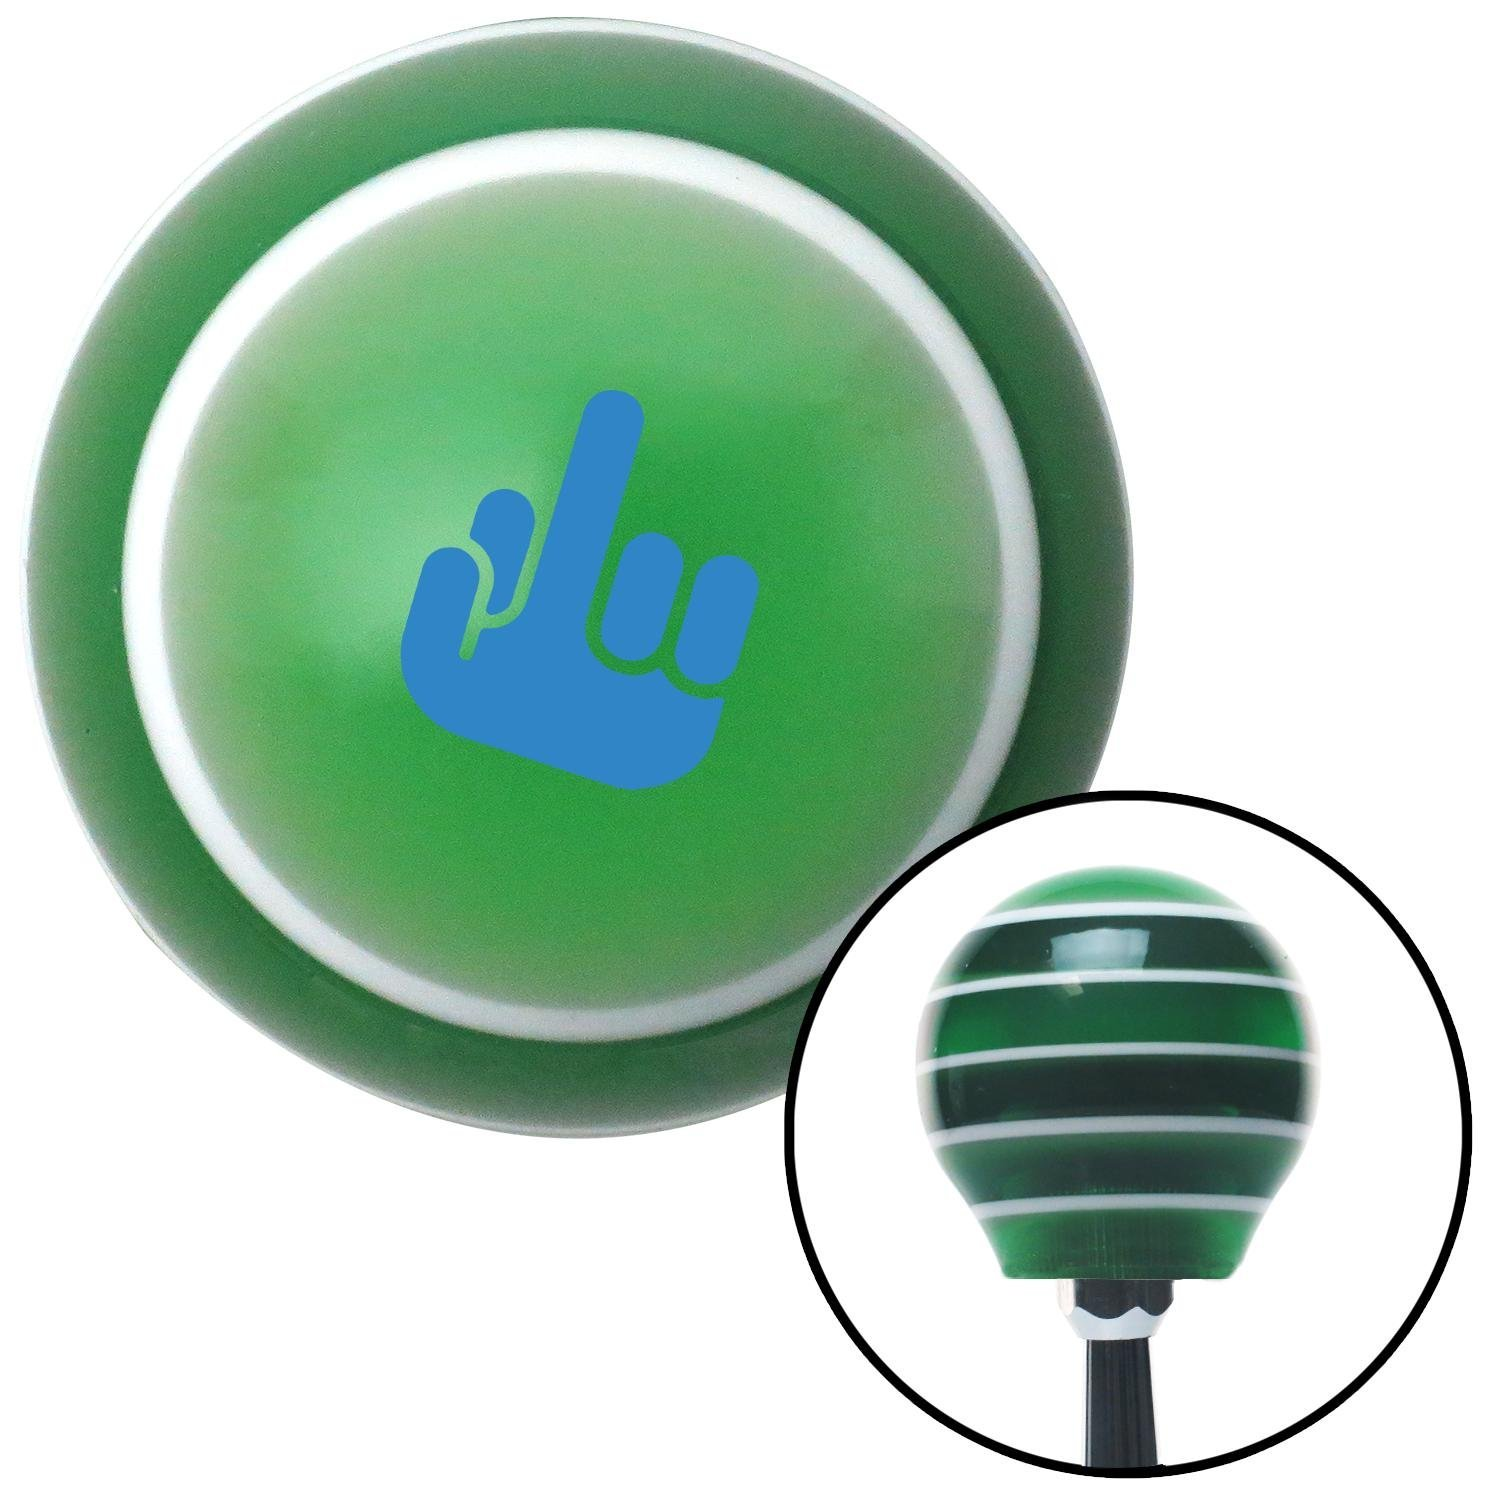 American Shifter 275394 Shift Knob Blue Middle Finger Solid Green Stripe with M16 x 1.5 Insert